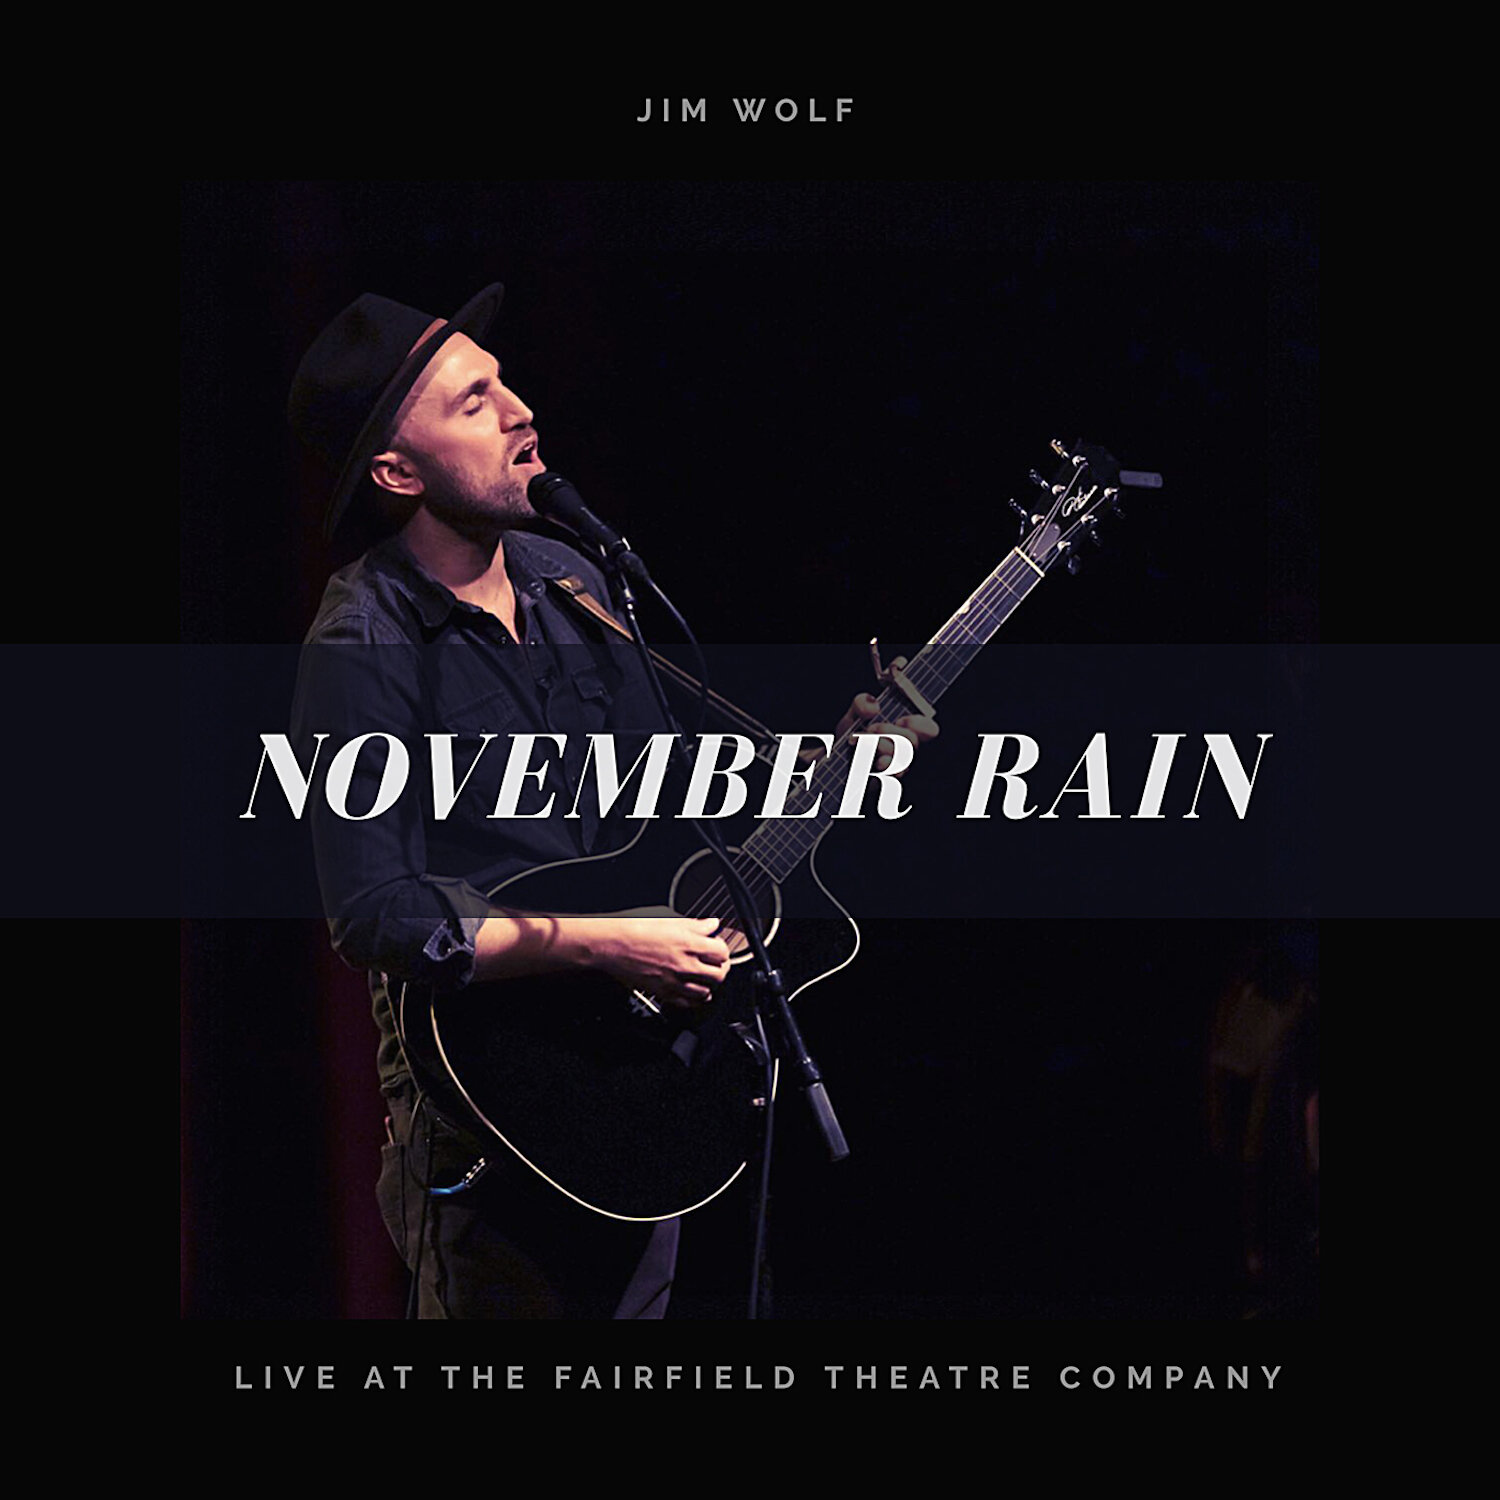 """NEW SINGLE OUT - Listen to Jim Wolf's live folk rendition of Guns N' Roses """"November Rain"""" - Live At The Fairfield Theater Company - is now streaming everywhere!  https://on.cmdshft.com/NovemberRain"""